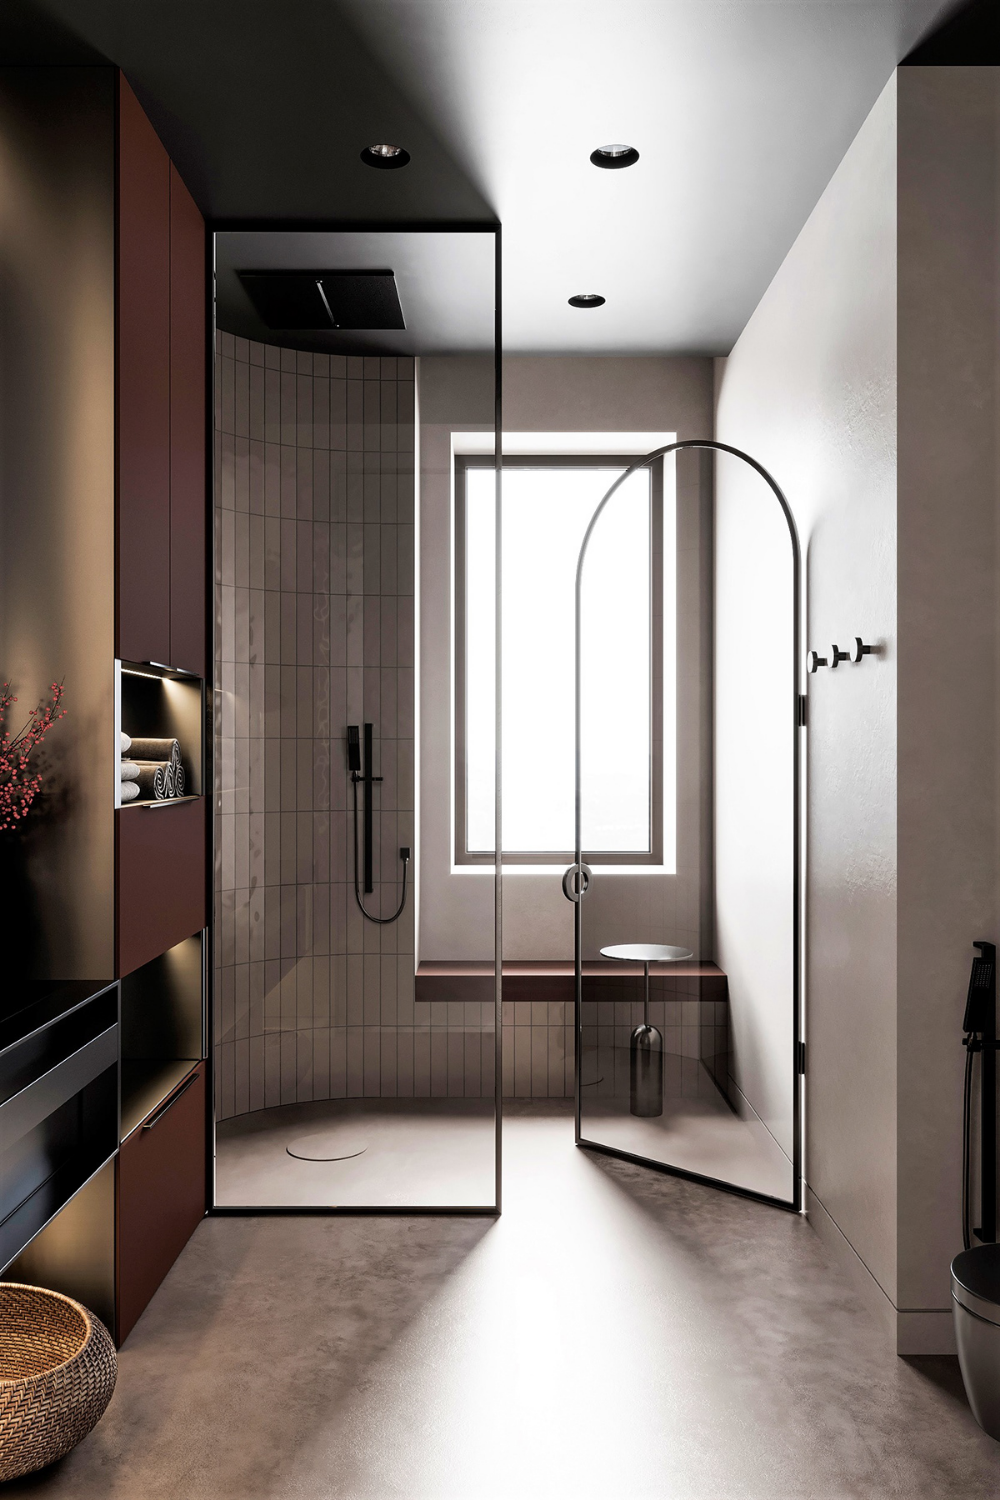 bathroom, creamy pink floor, white wall tiles, marroon wall shelves, black vanity, glass partition